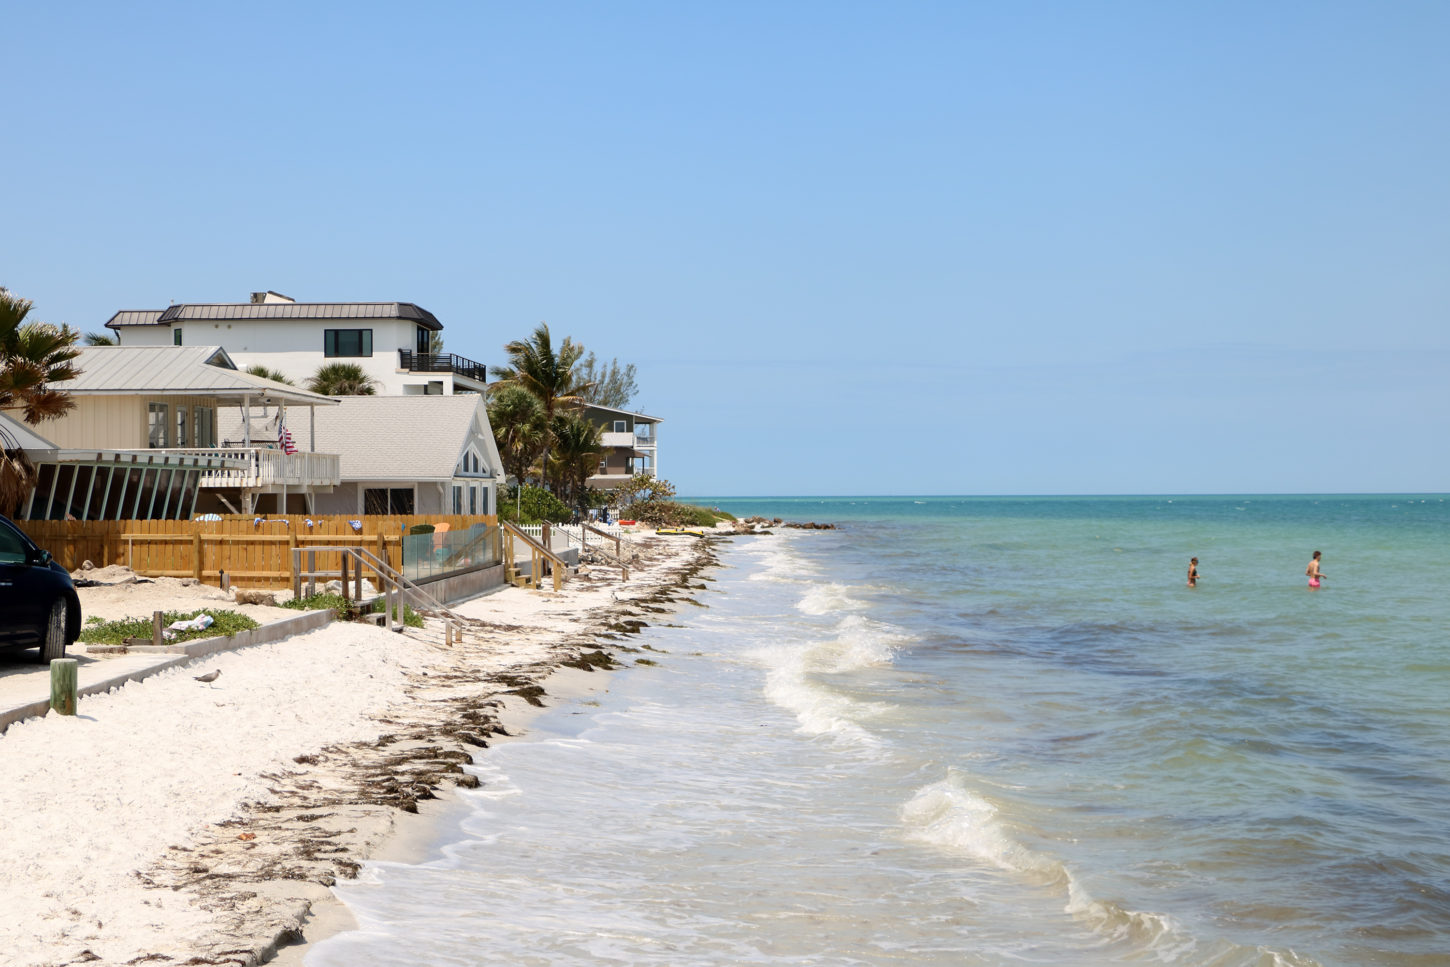 Visiting Anna Maria Island: Barrier Island Paradise - Jewish Exponent